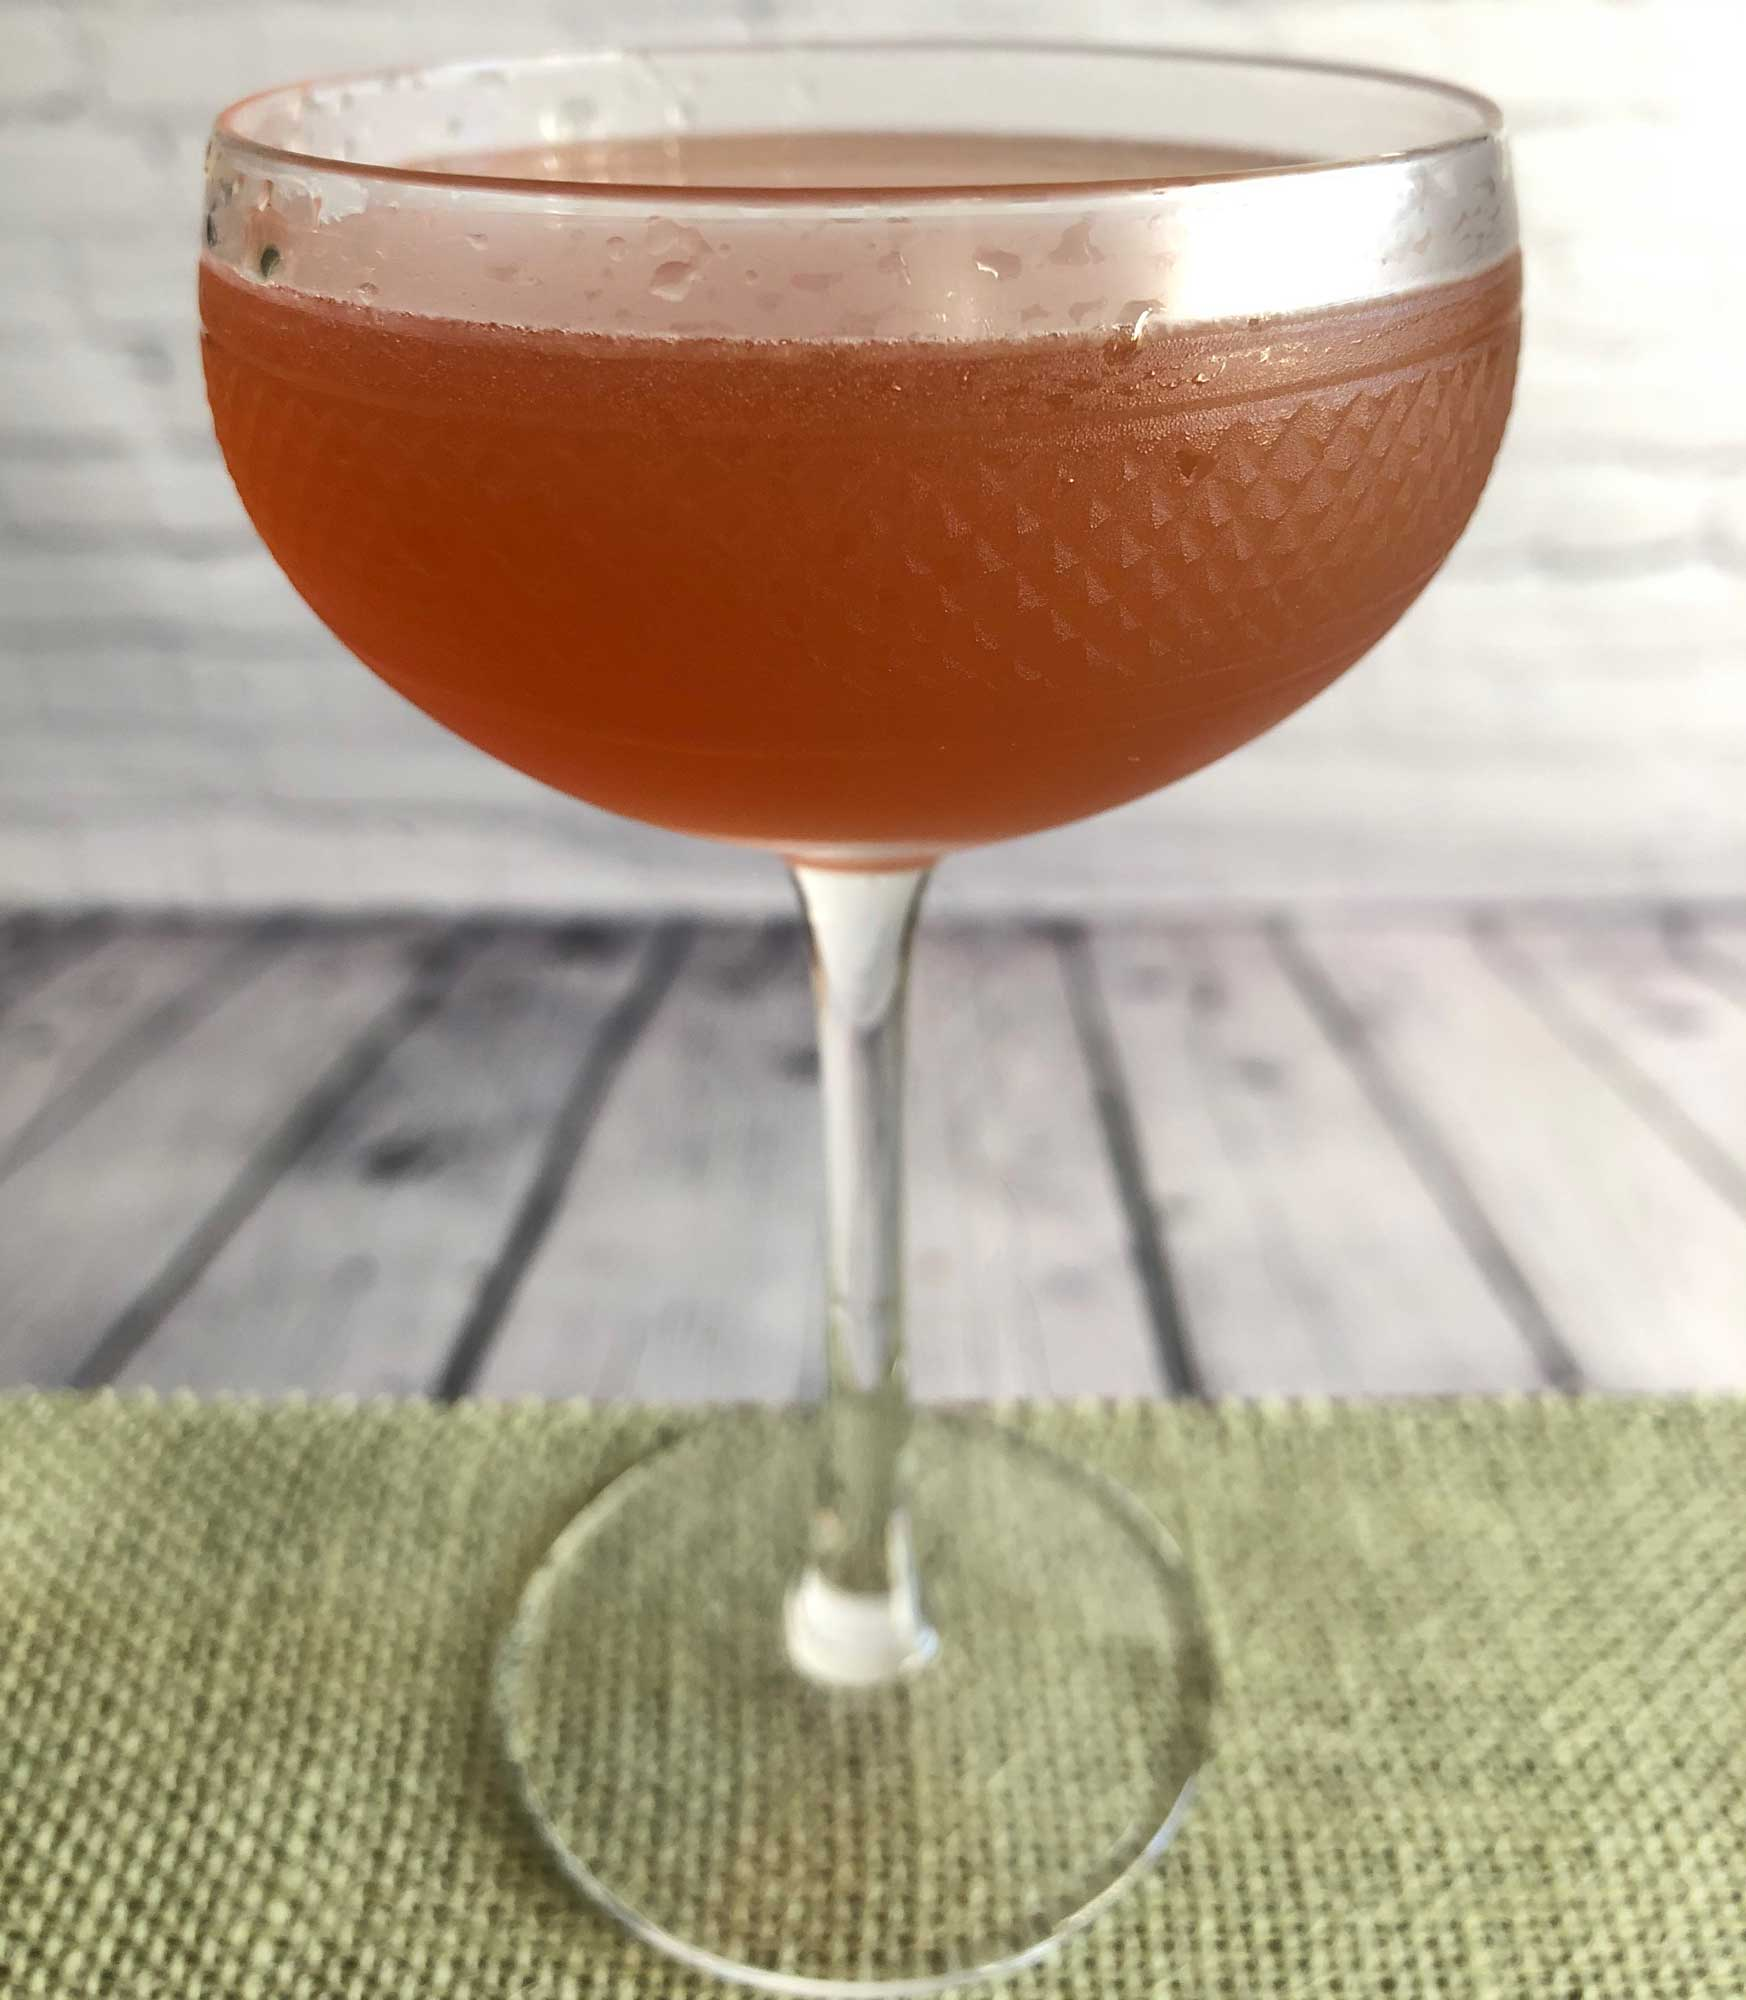 An example of the Post Modern, the mixed drink (cocktail), by Tom Richter, Dear Irving, New York City, featuring scotch whisky, Hayman's Sloe Gin, lemon juice, honey syrup, and absinthe; photo by Lee Edwards